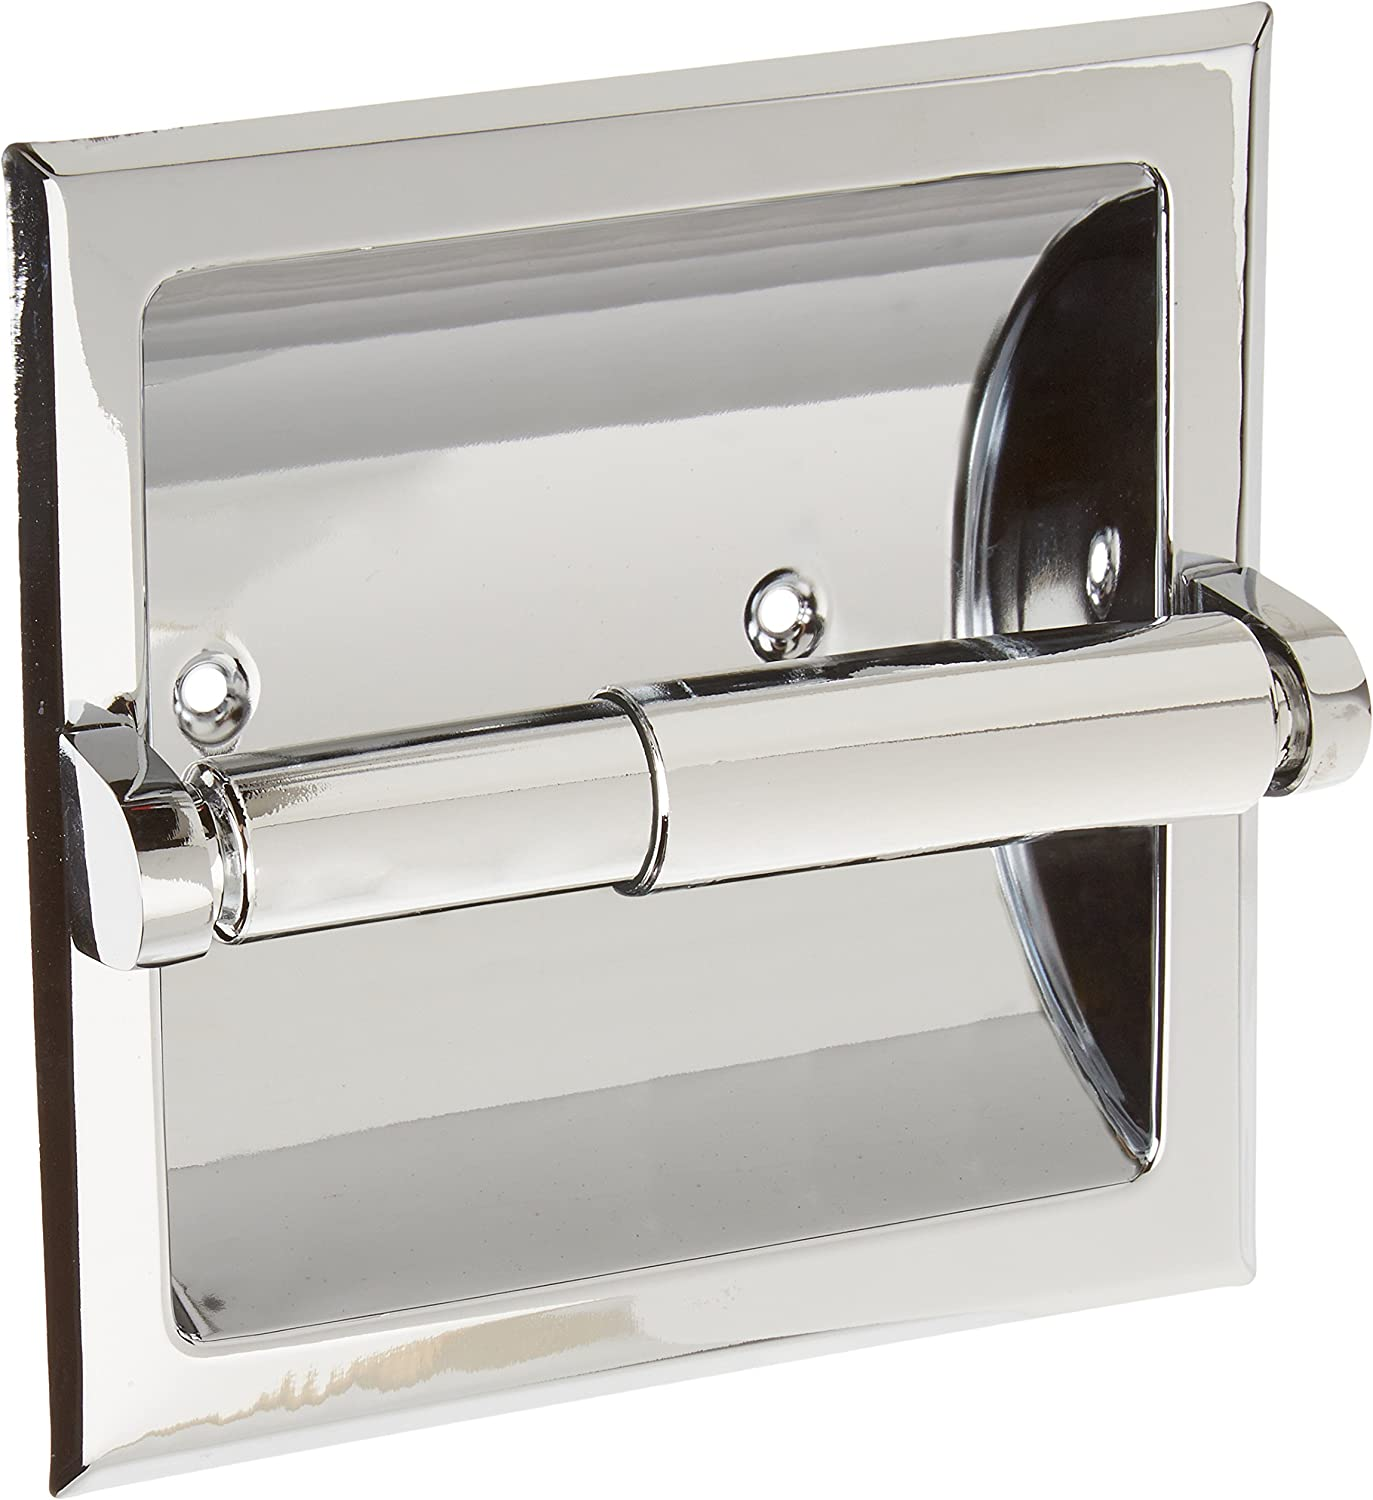 Moen 575 Donner Collection Recessed Paper Holder Chrome Toilet Paper Holders Amazon Com